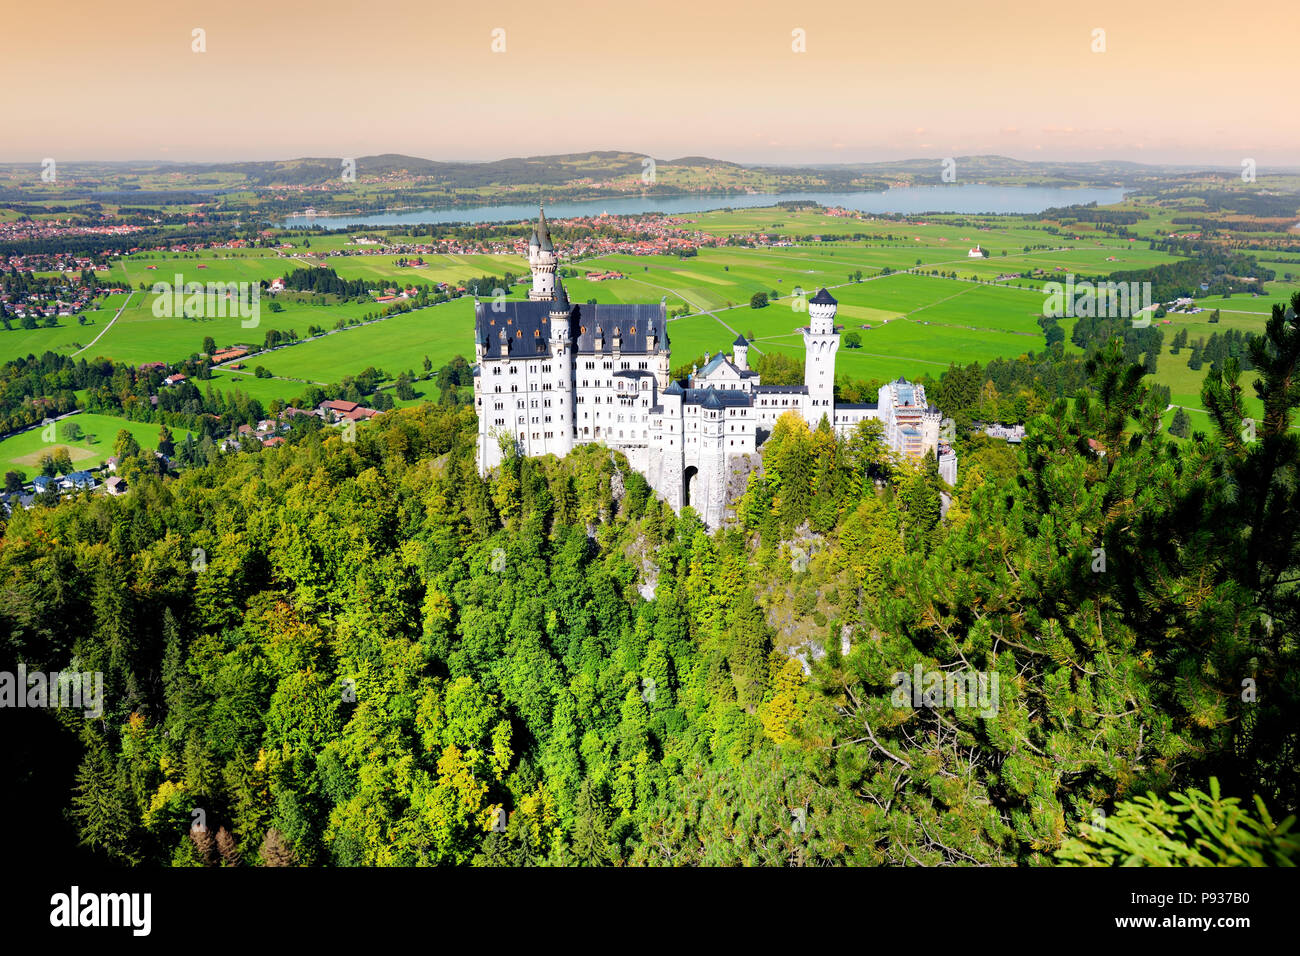 Famous Neuschwanstein Castle, 19th-century Romanesque Revival palace on a rugged hill above the village of Hohenschwangau near Fussen in southwest Bav - Stock Image